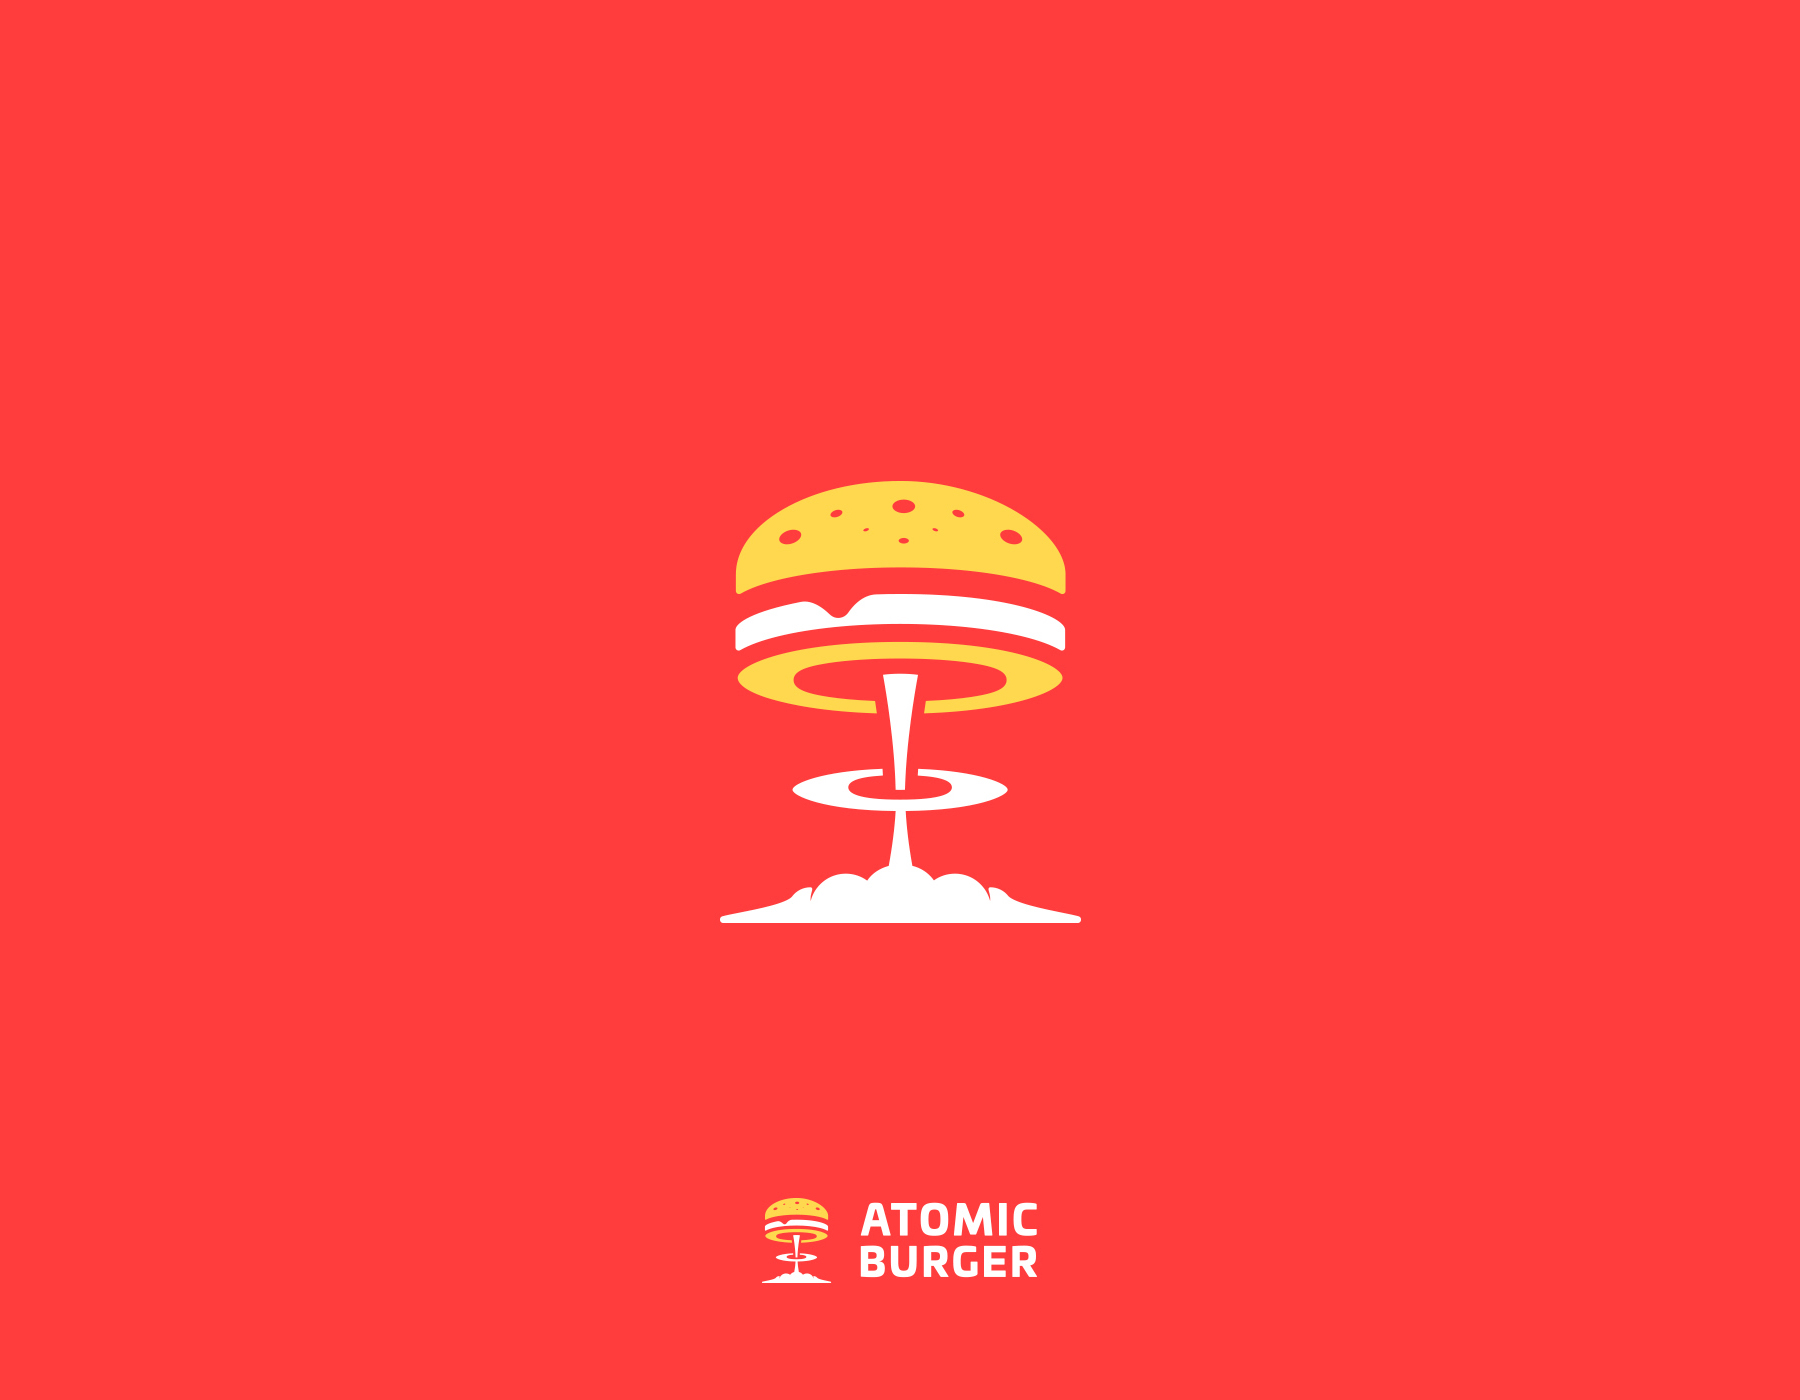 Creative logos with hidden symbolic meaning - Atomic Burger